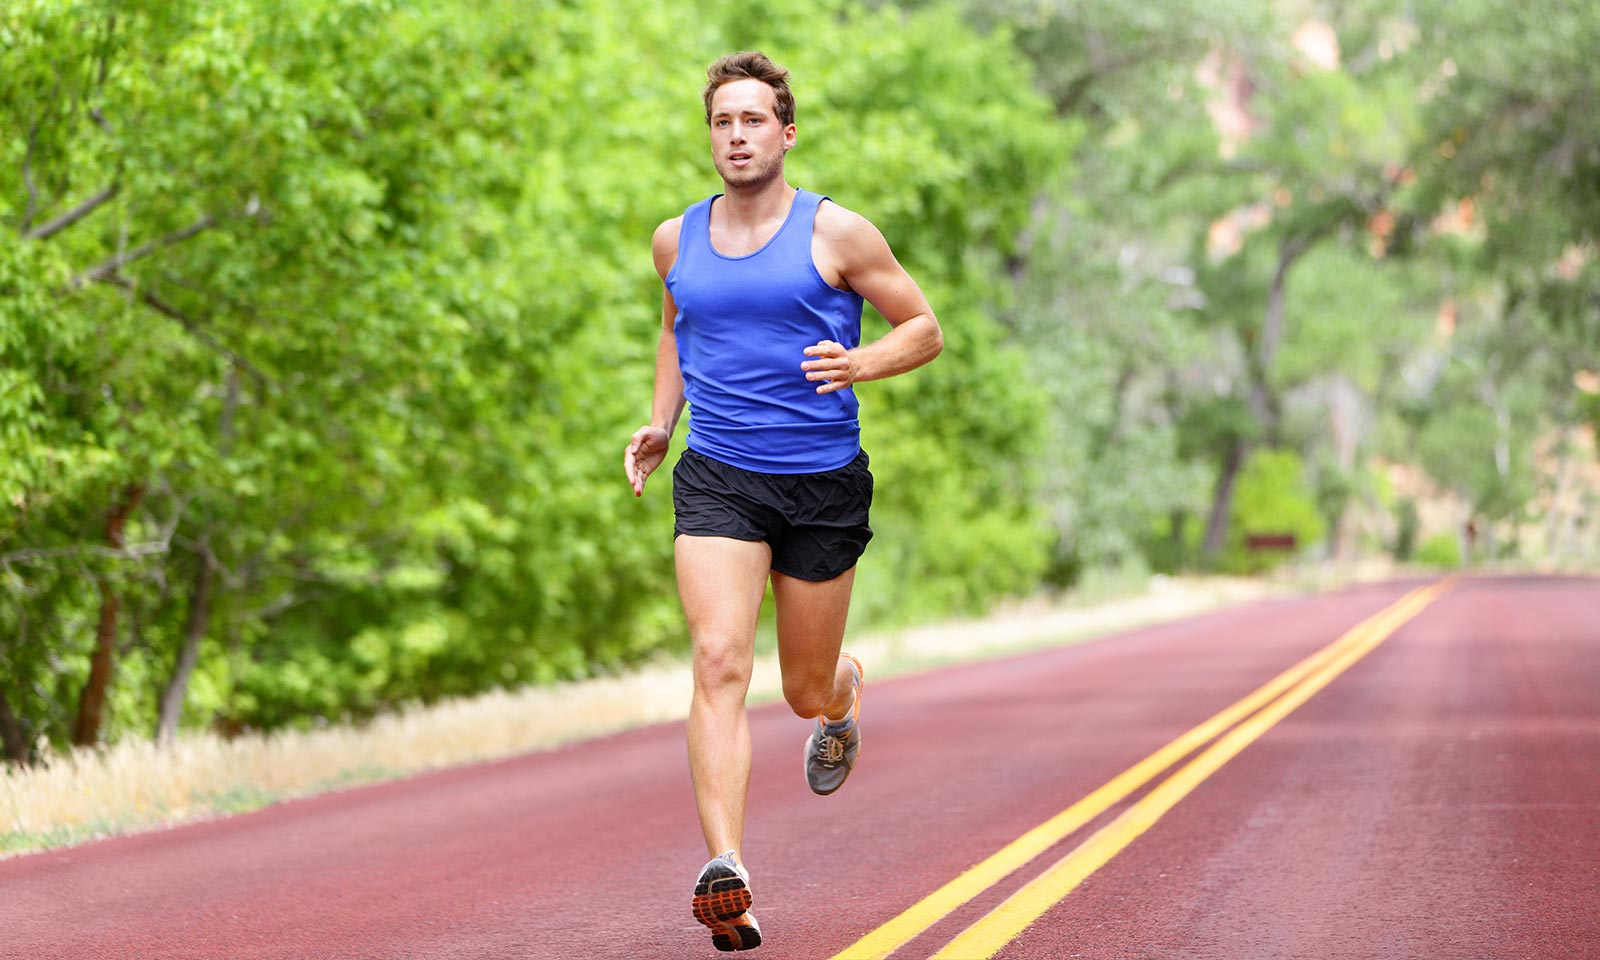 What Type Of Cardio Is Best For Weight Loss?